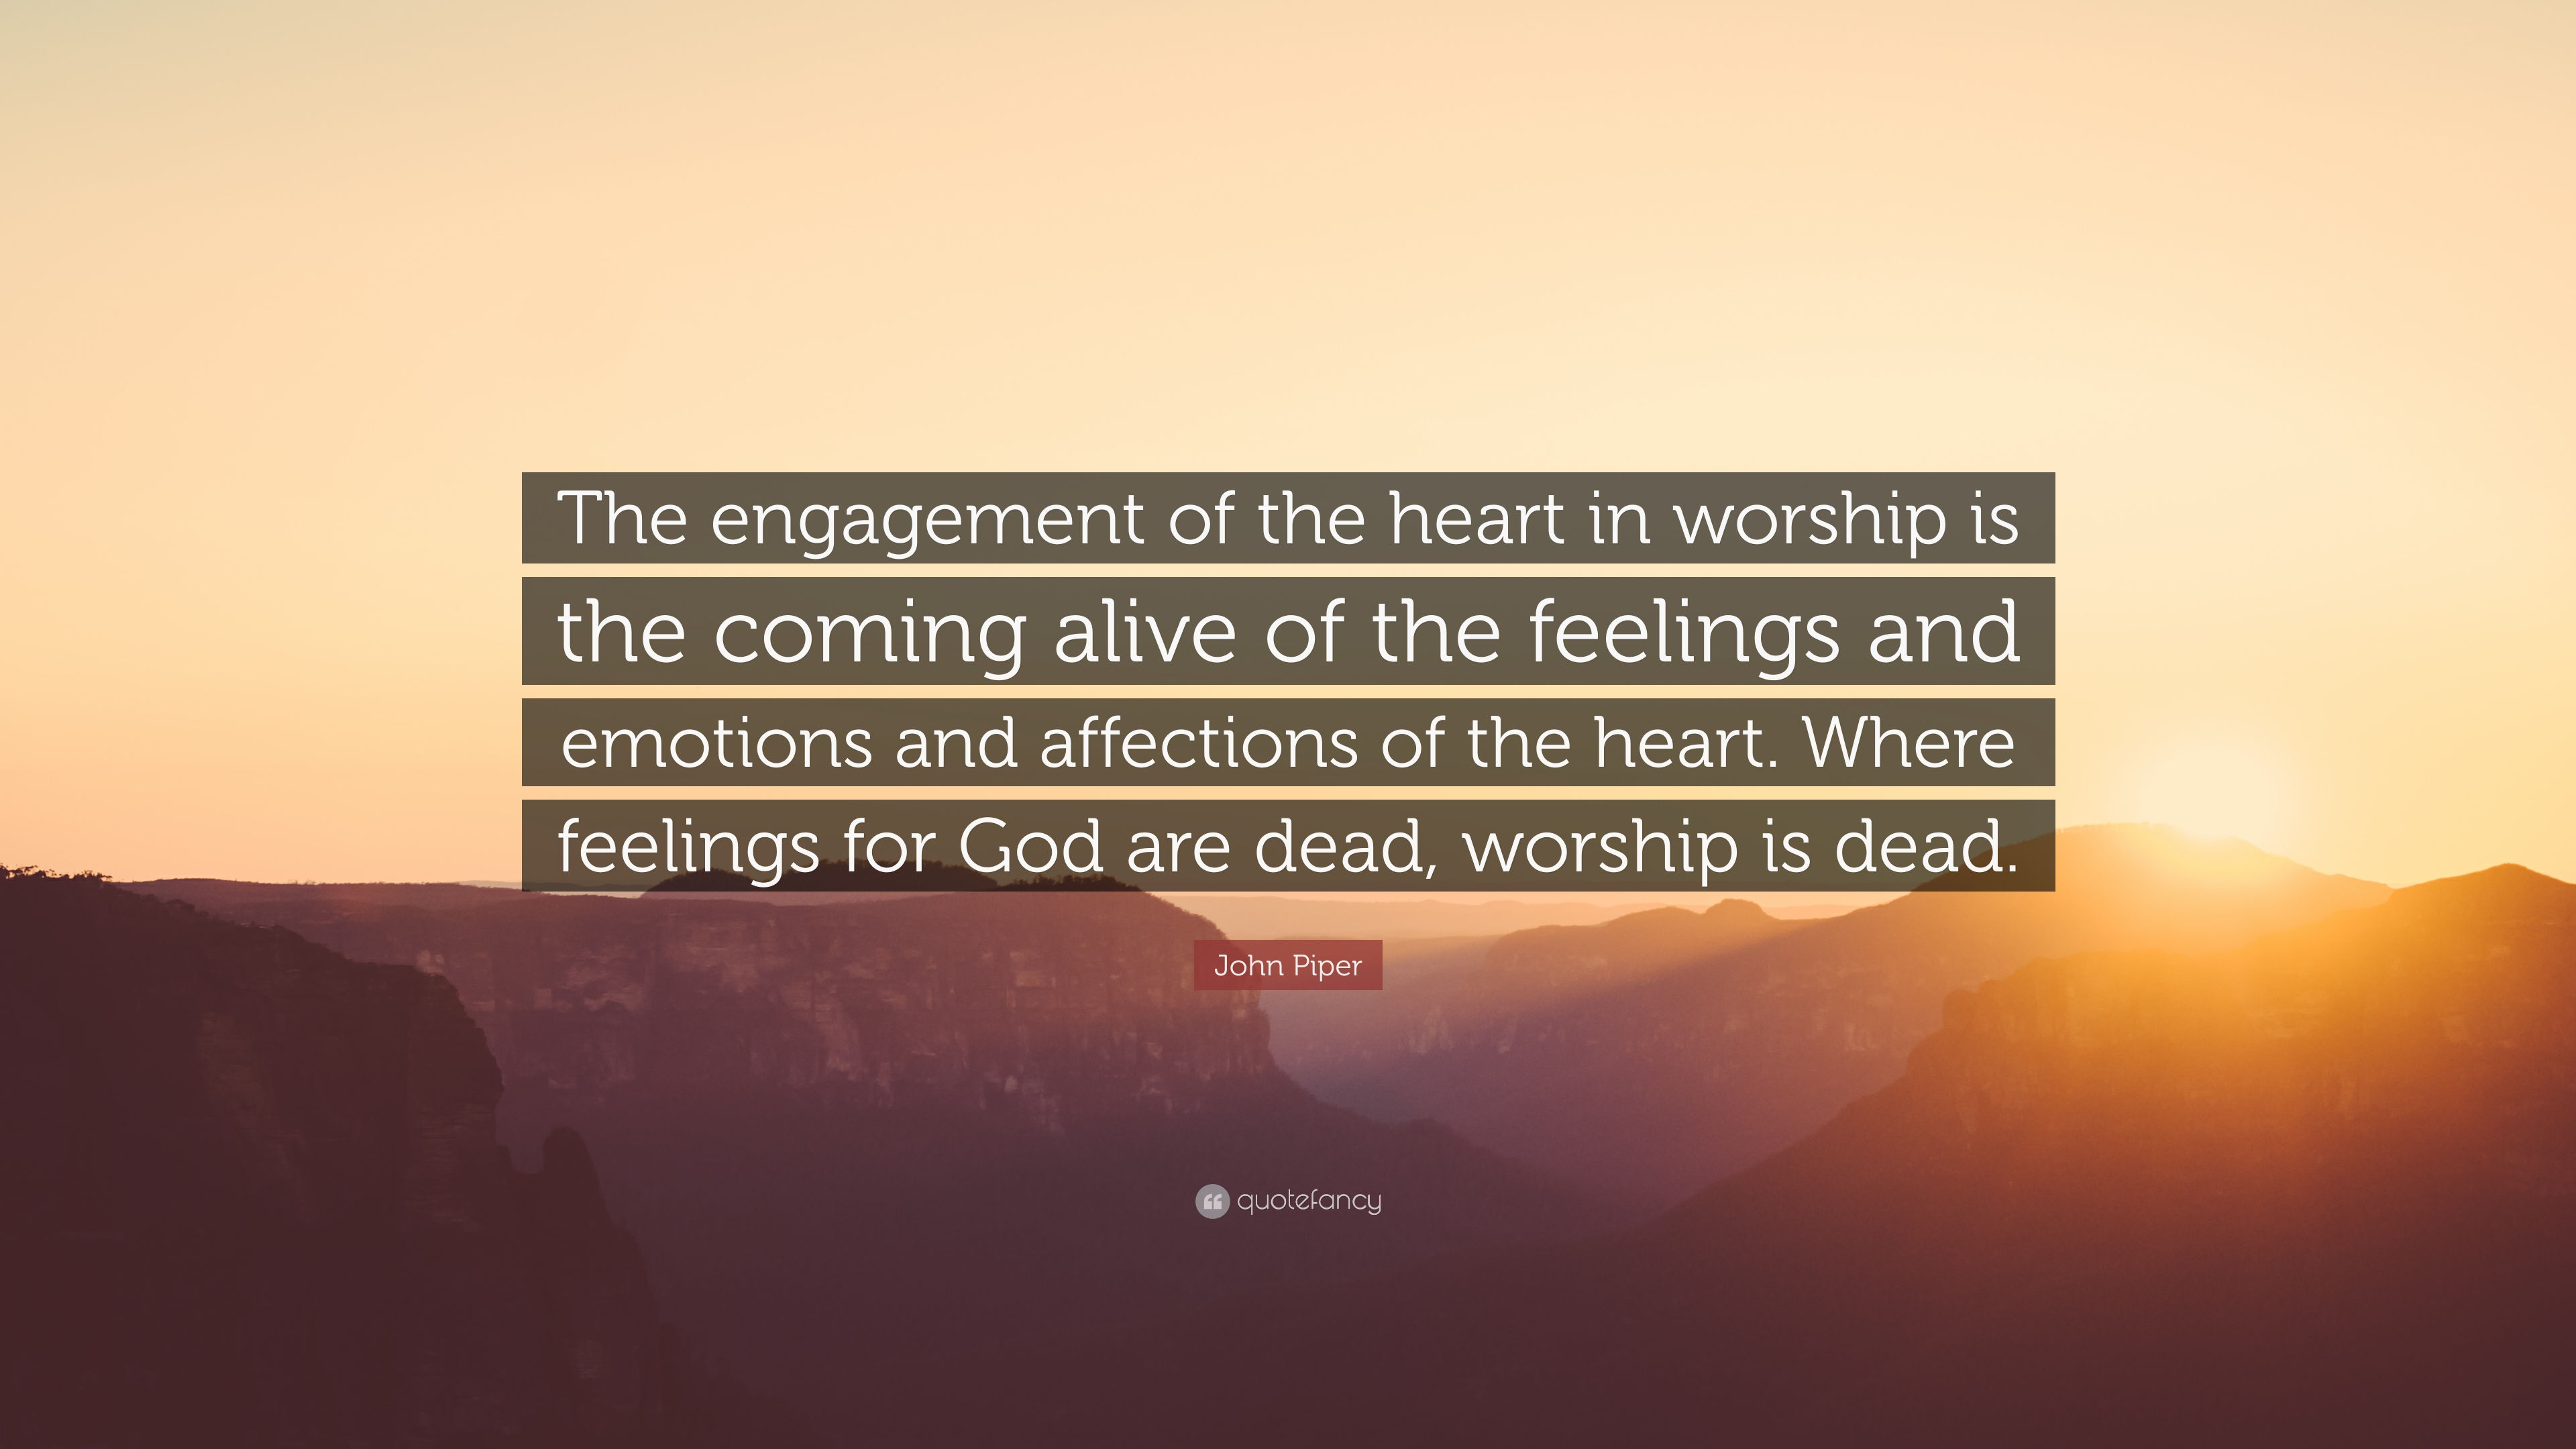 John piper quote the engagement of the heart in worship is the coming alive